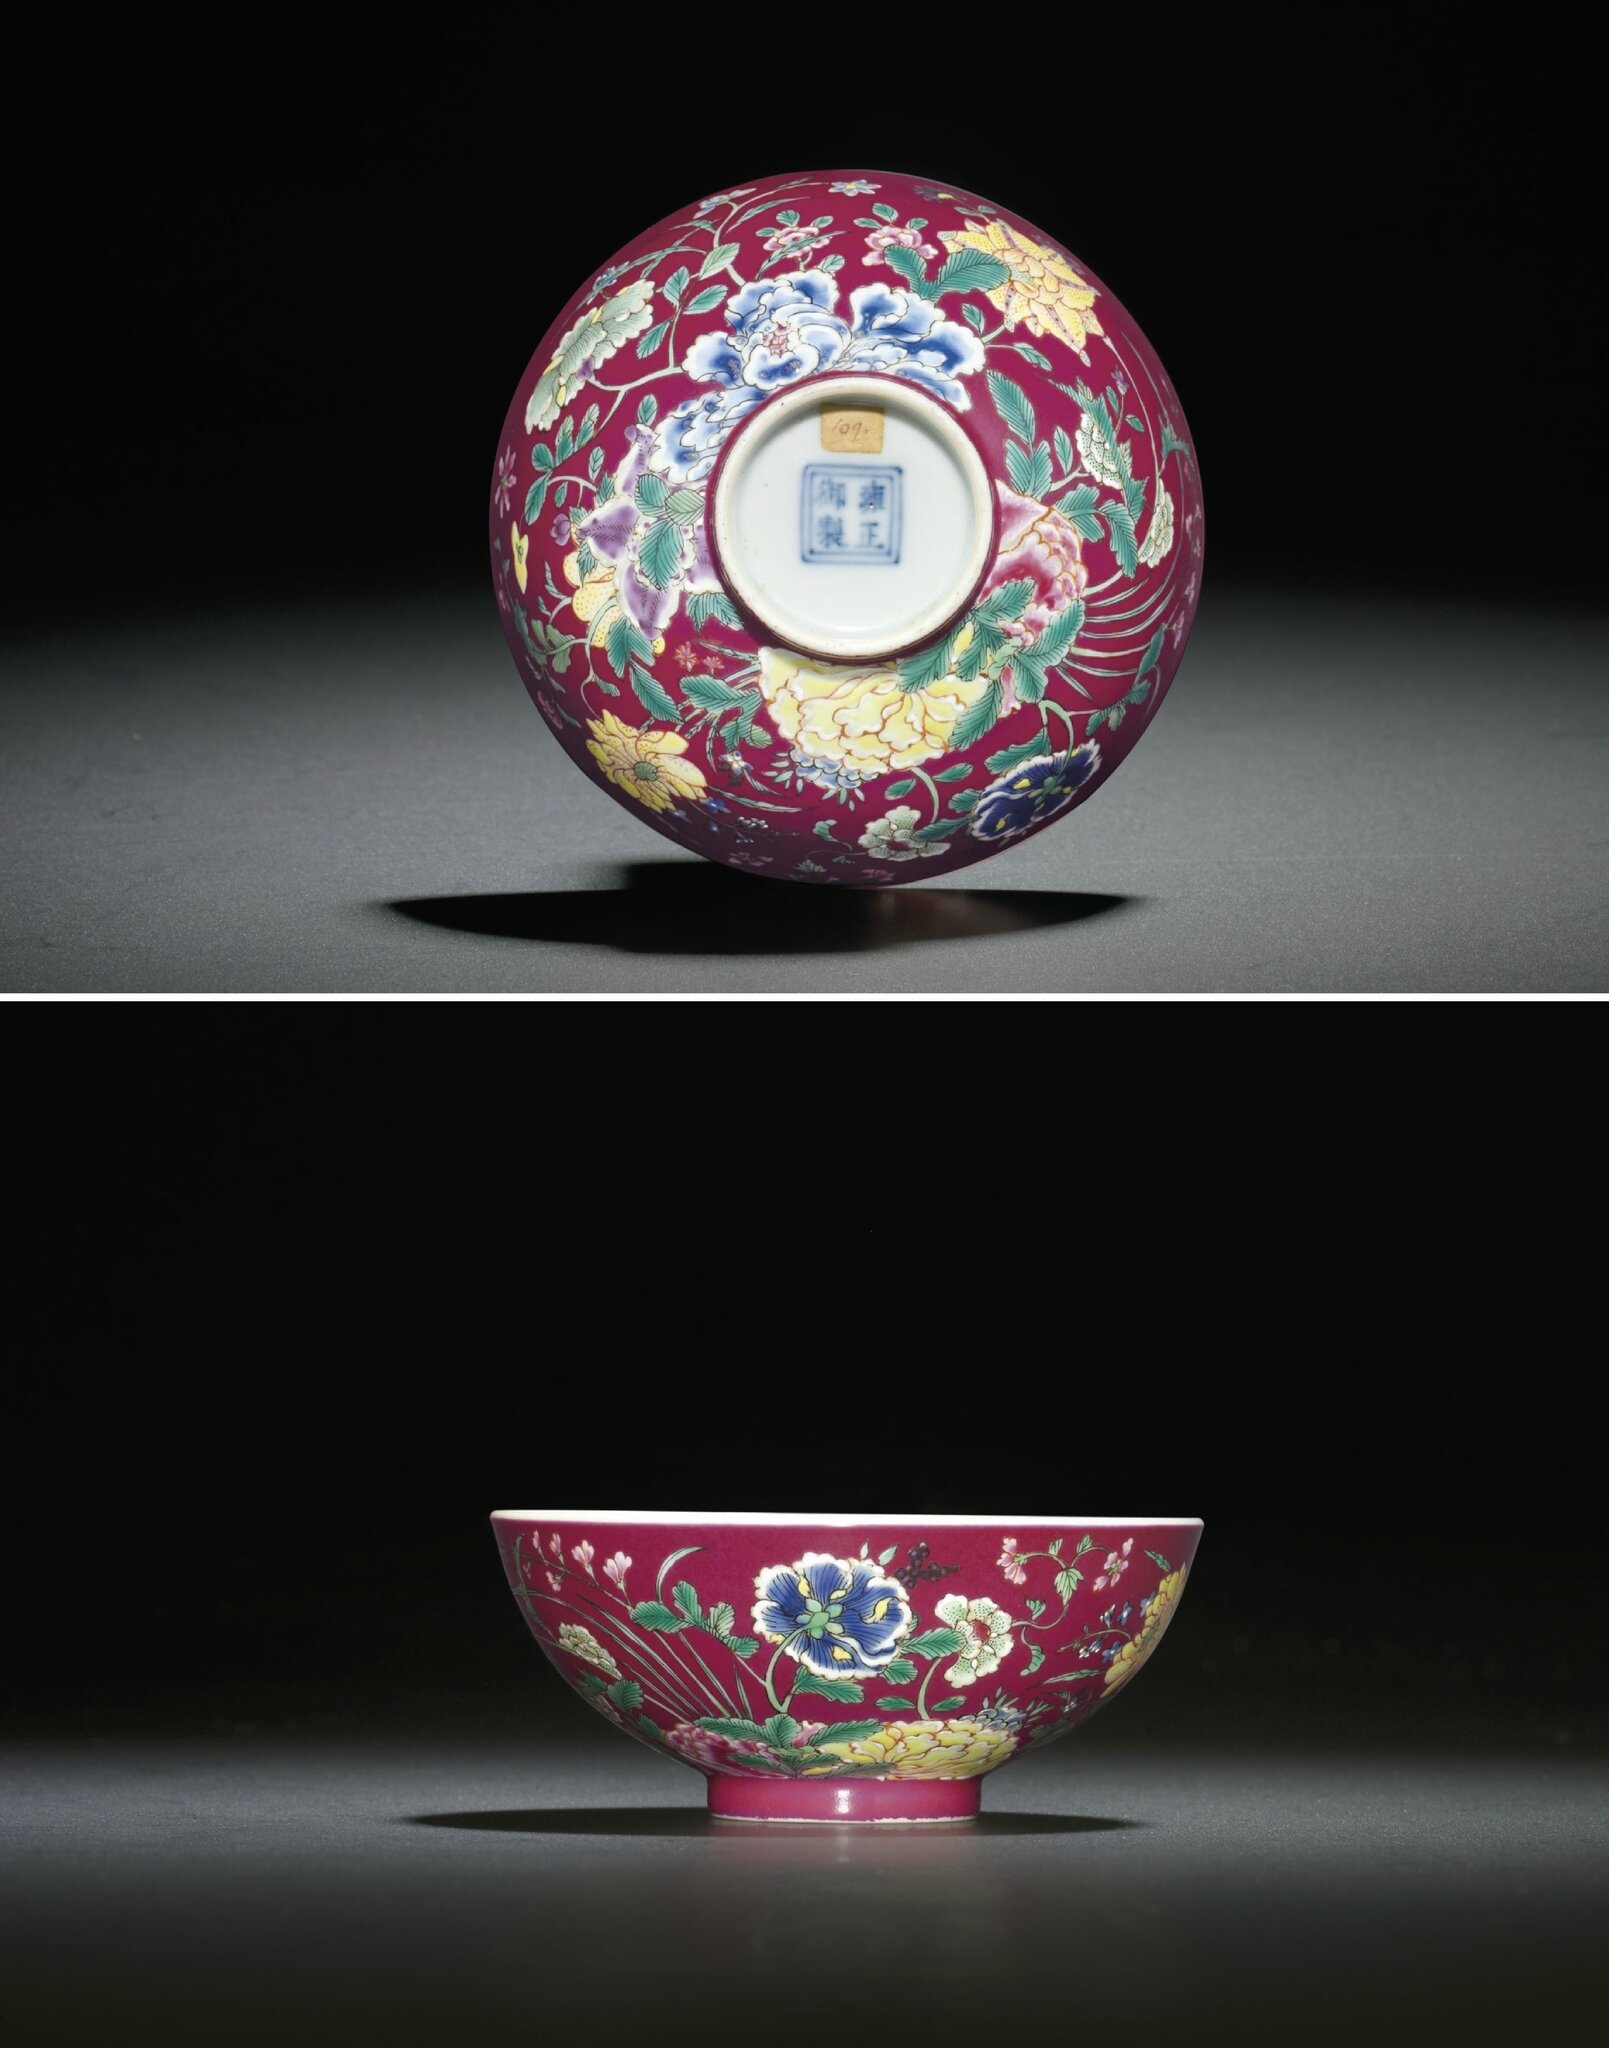 A fine Imperial ruby-red groundfamille rosebowl, Yongzheng four-characteryuzhimark within double squares and of the period (1723-1735)